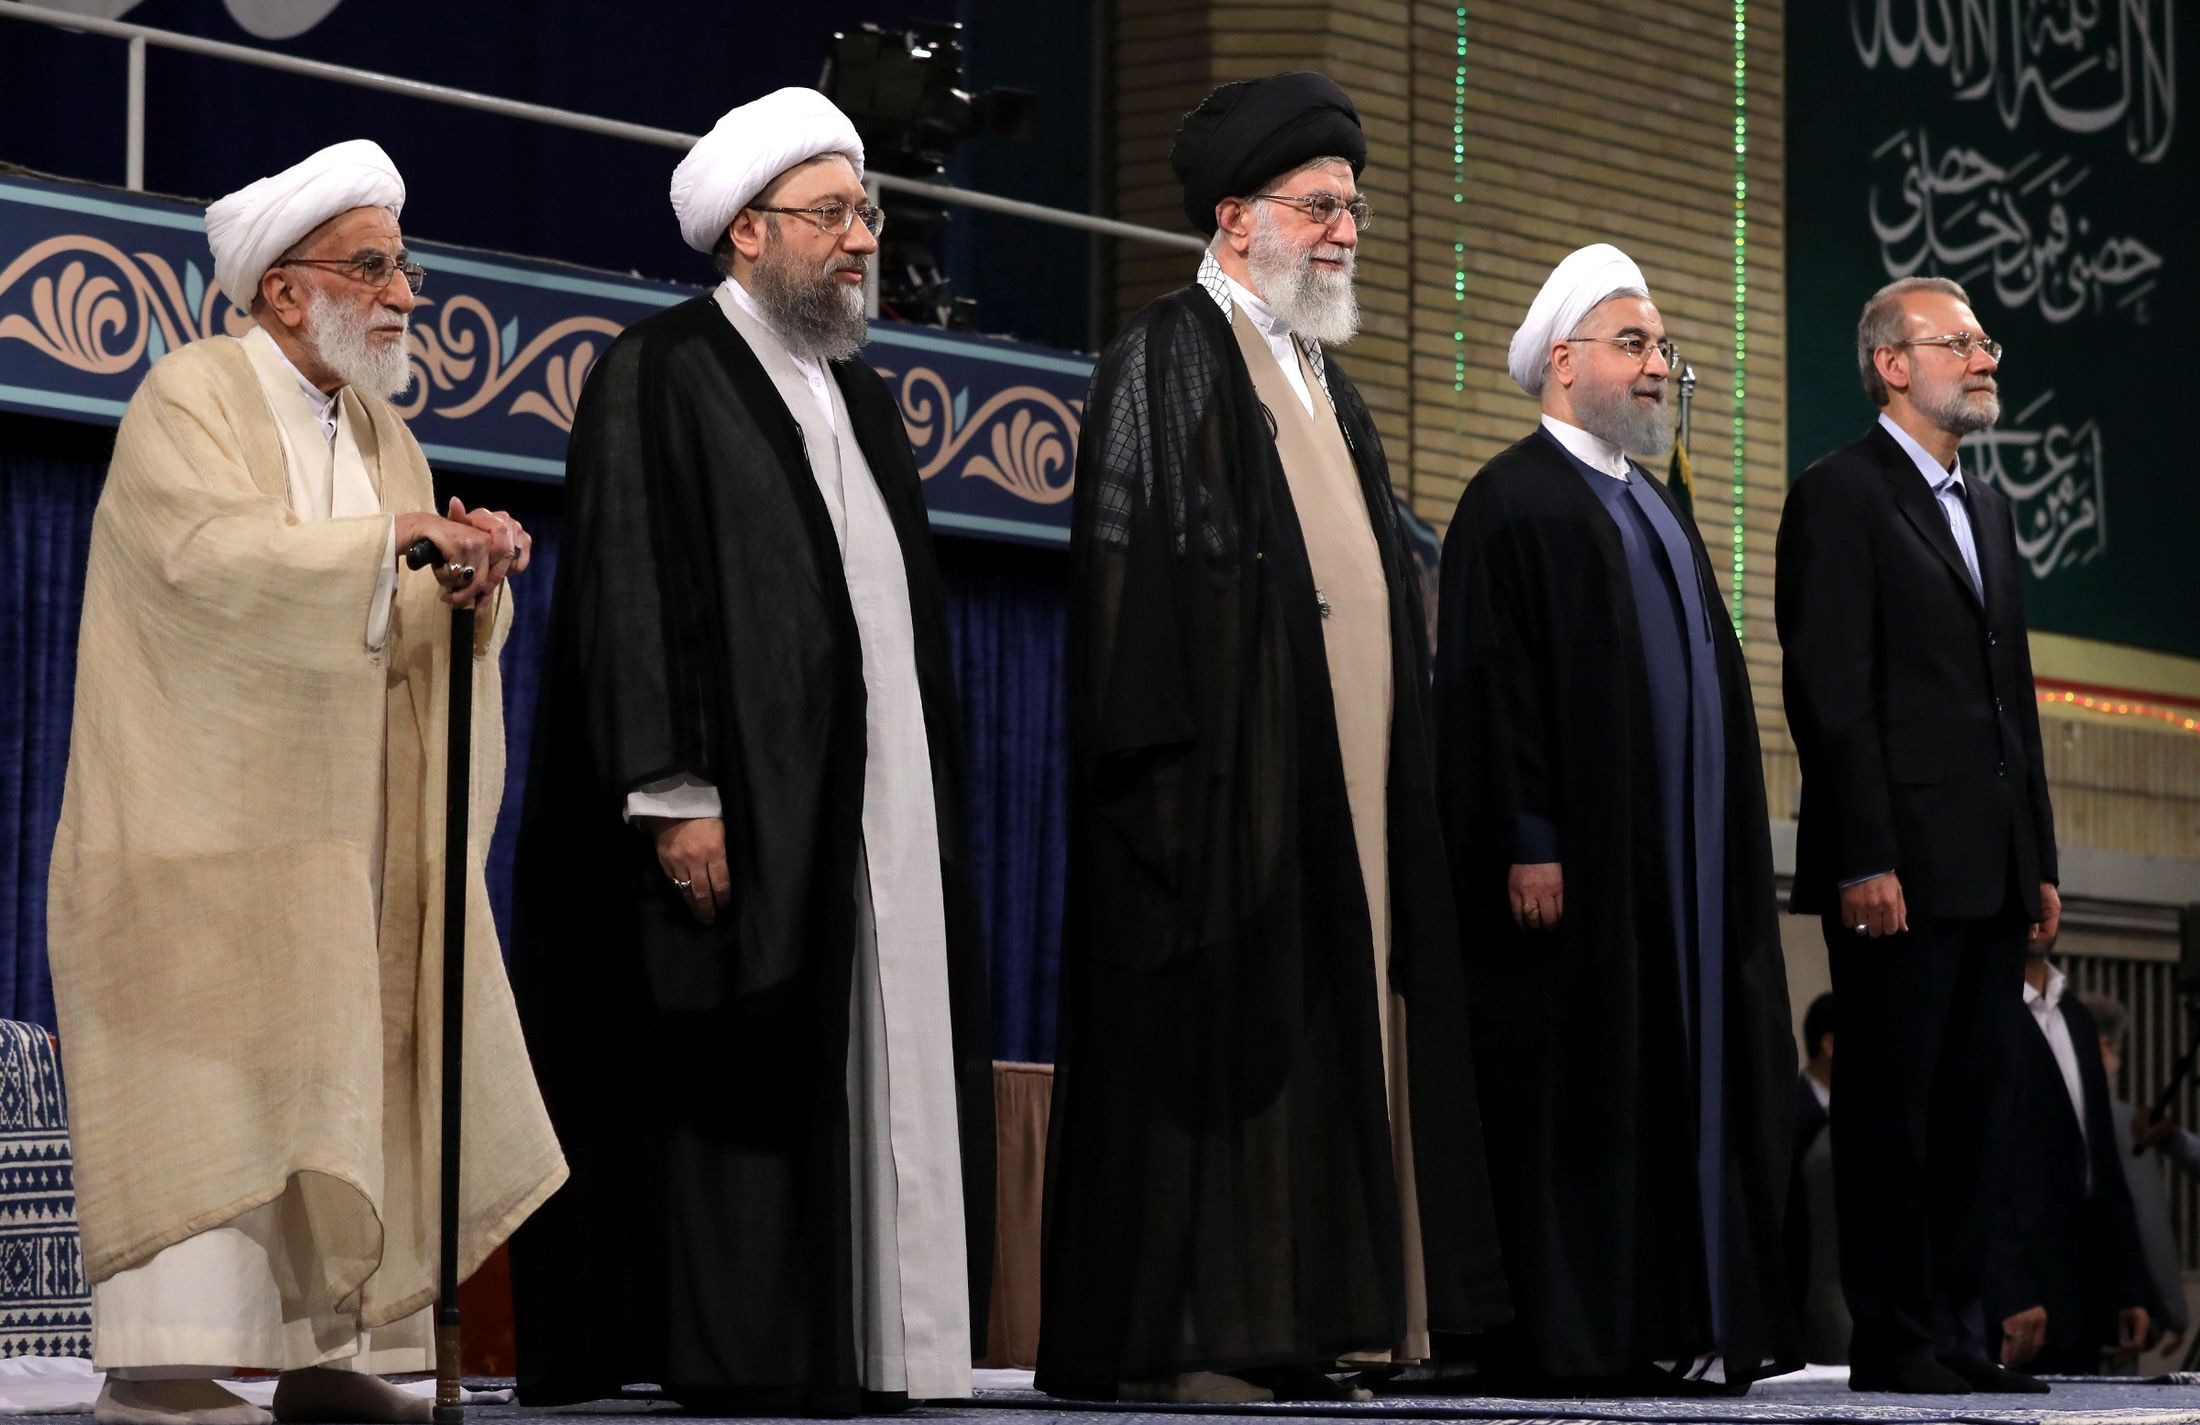 In this picture released by official website of the office of the Iranian supreme leader, Supreme Leader Ayatollah Ali Khamenei, center, President Hassan Rouhani, second right, parliament speaker Ali Larijani, right, judiciary chief Sadeq Larijani, second left, and head of the Assembly of Experts and secretary of Guardian Council Ahmad Jannati listen to the national anthem at the start of the official endorsement ceremony of President Rouhani in Tehran, Iran, Thursday, Aug. 3, 2017. (Office of the Iranian Supreme Leader via AP)